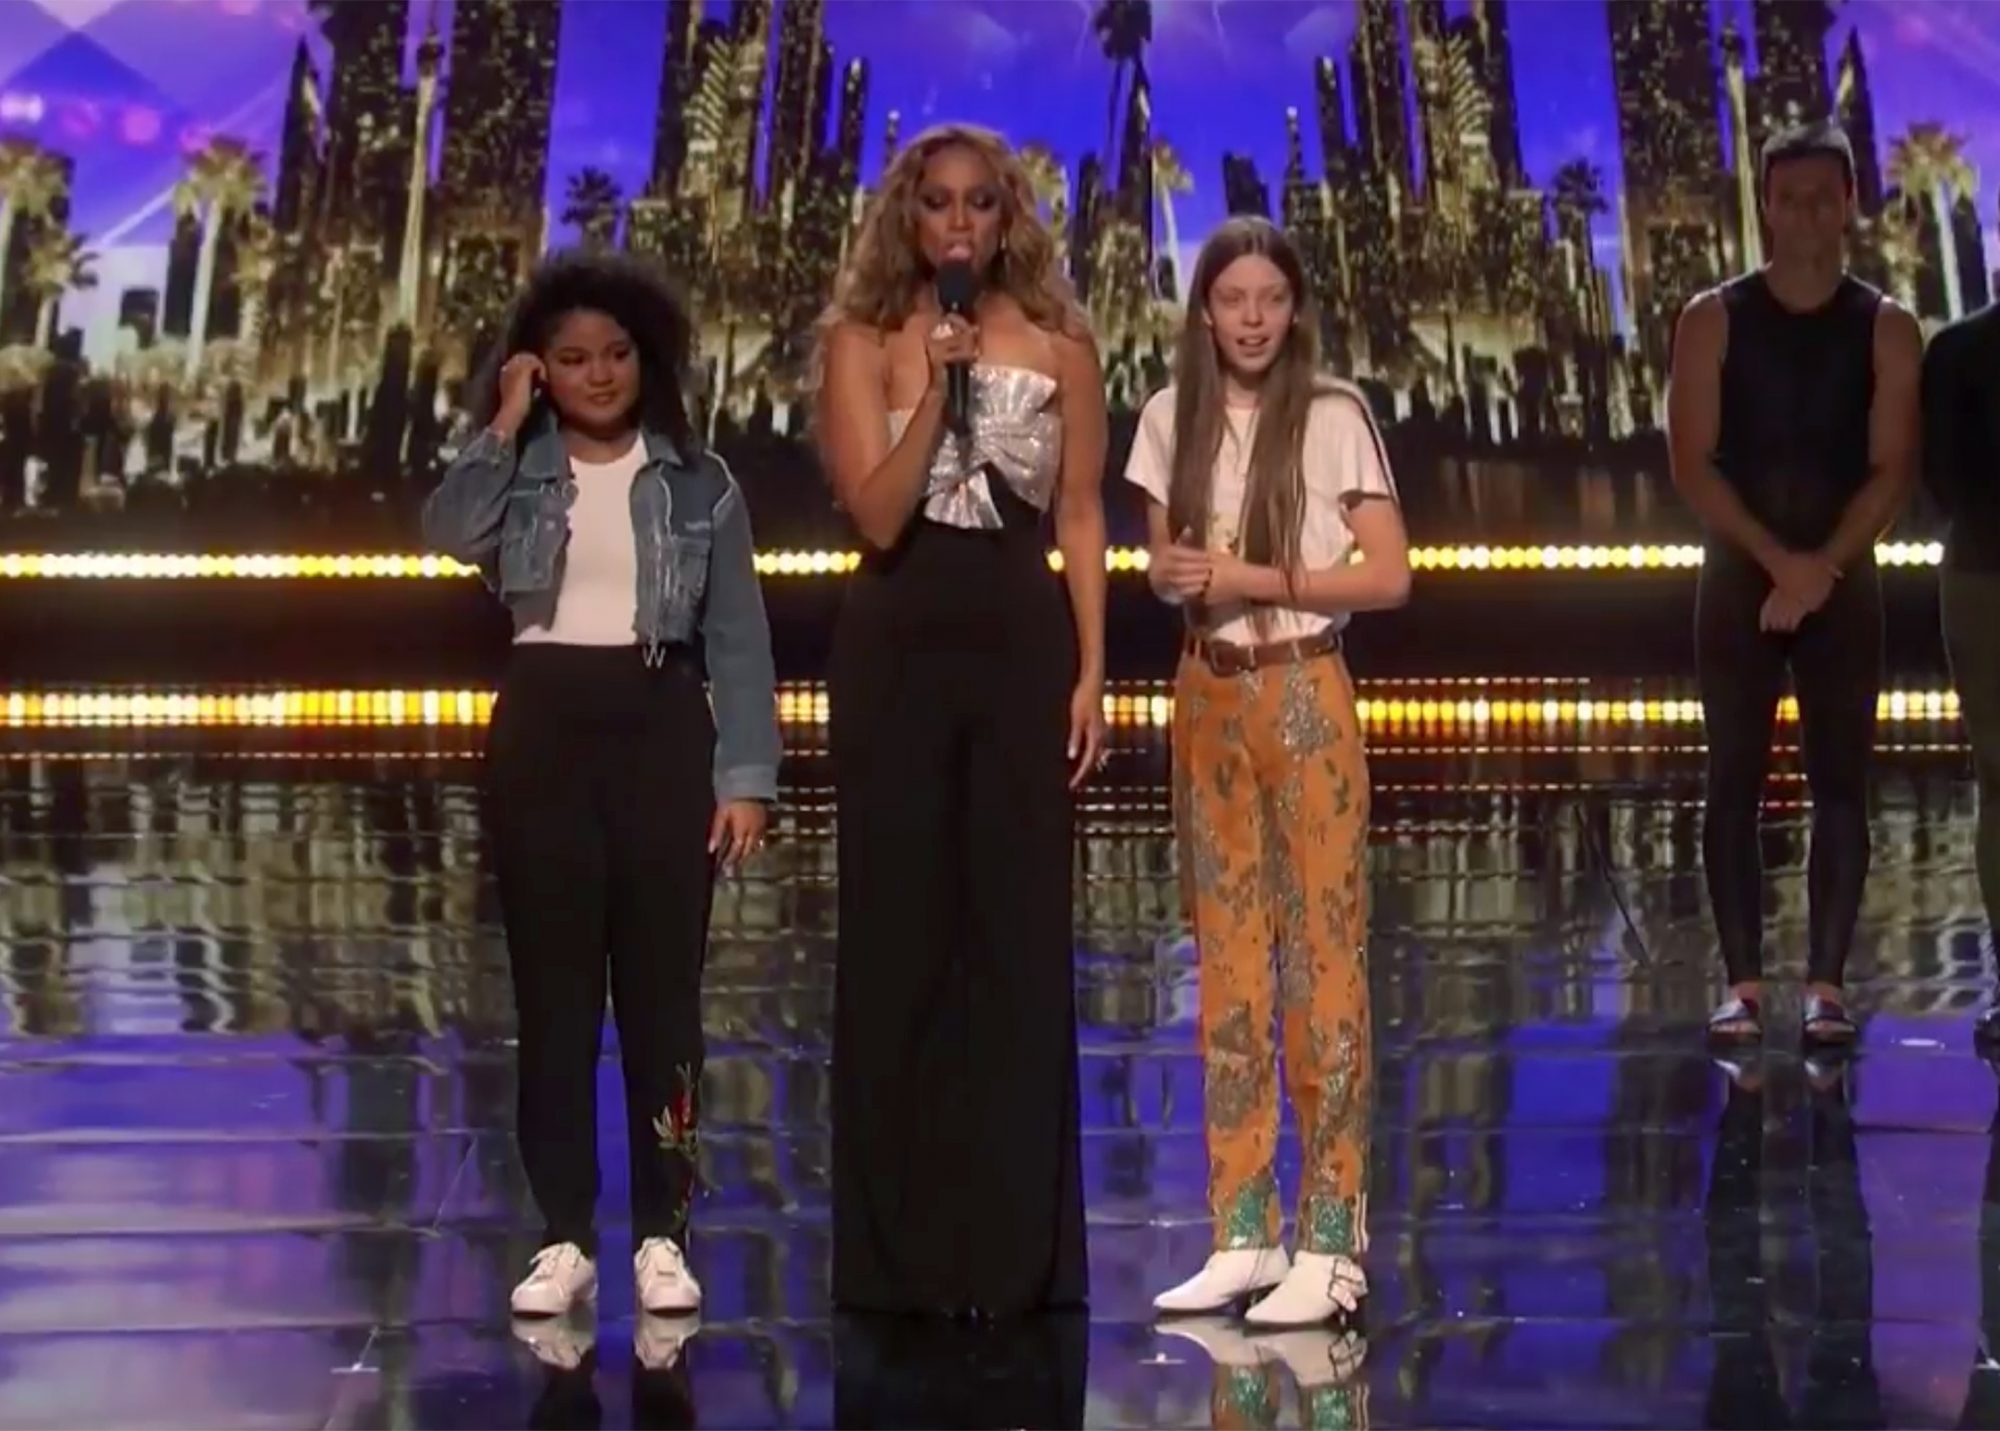 courtney hadwin and amanda mena America's Got TalentCredit: NBC